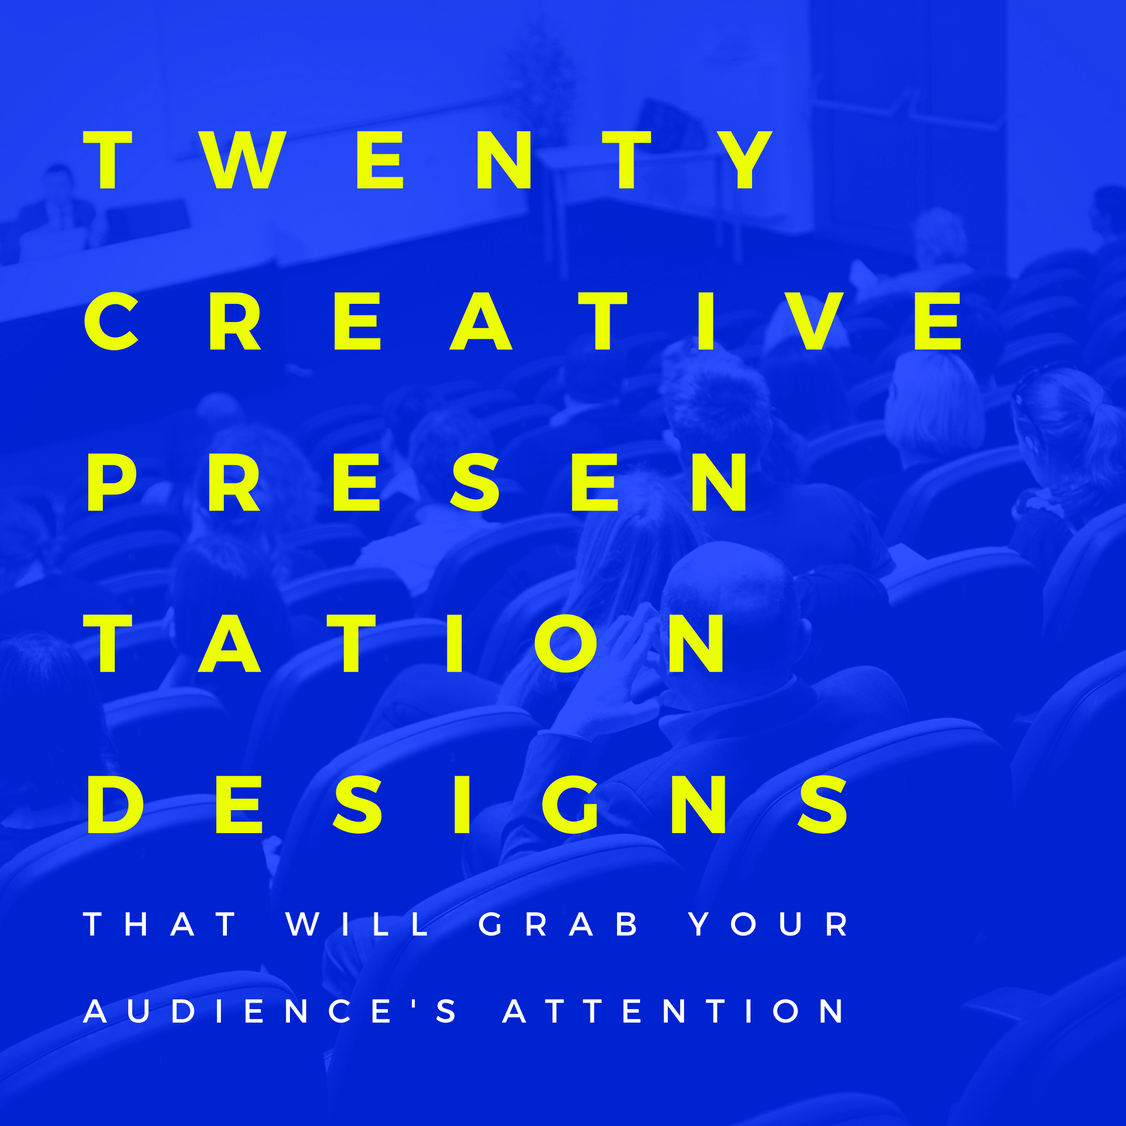 copy-of-copy-of-20-creative-presentations-that-will-grab-your-audiences-attention-1